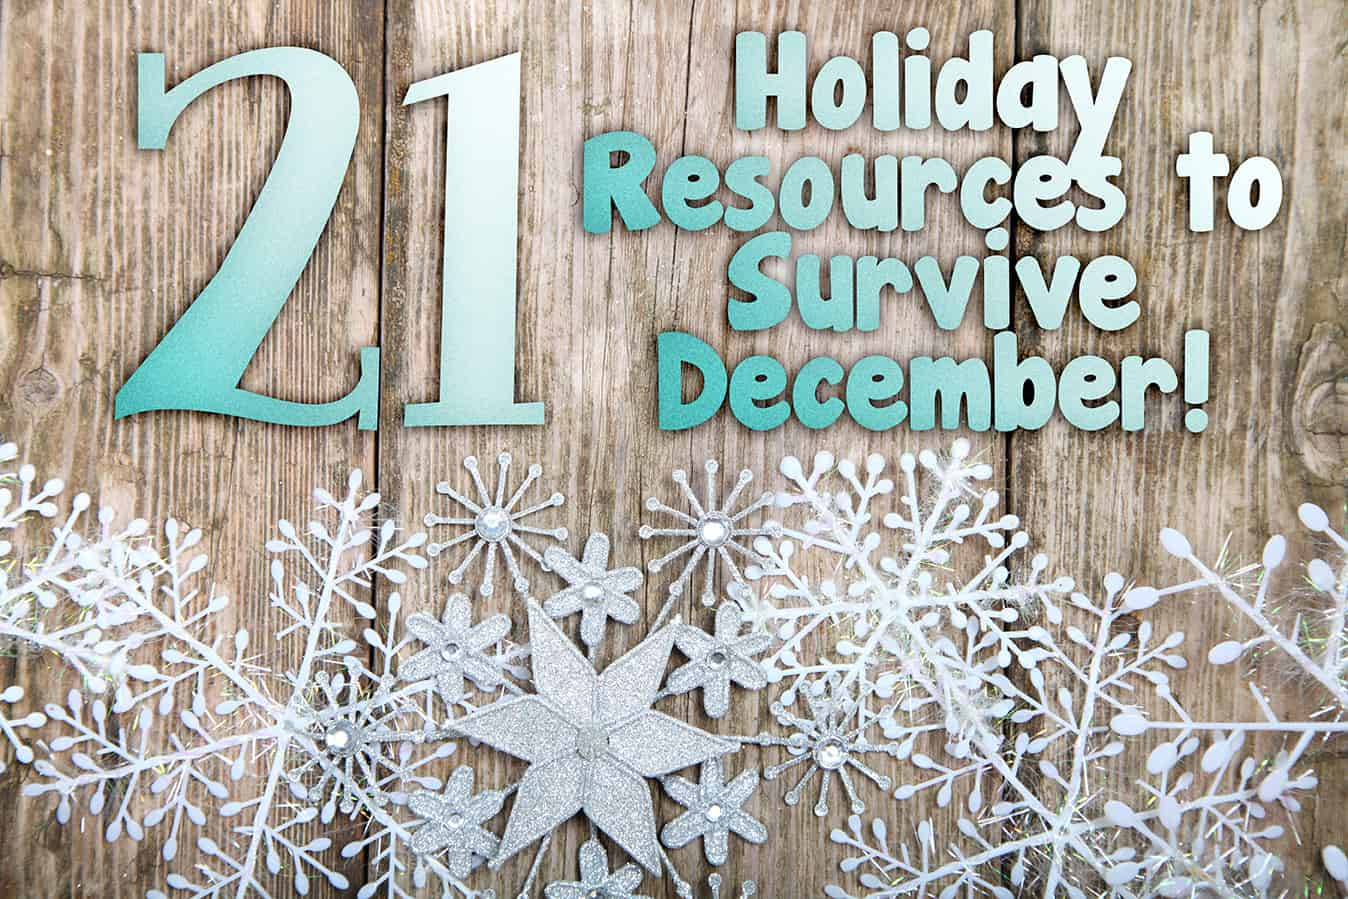 21 Holiday Resources to Survive December